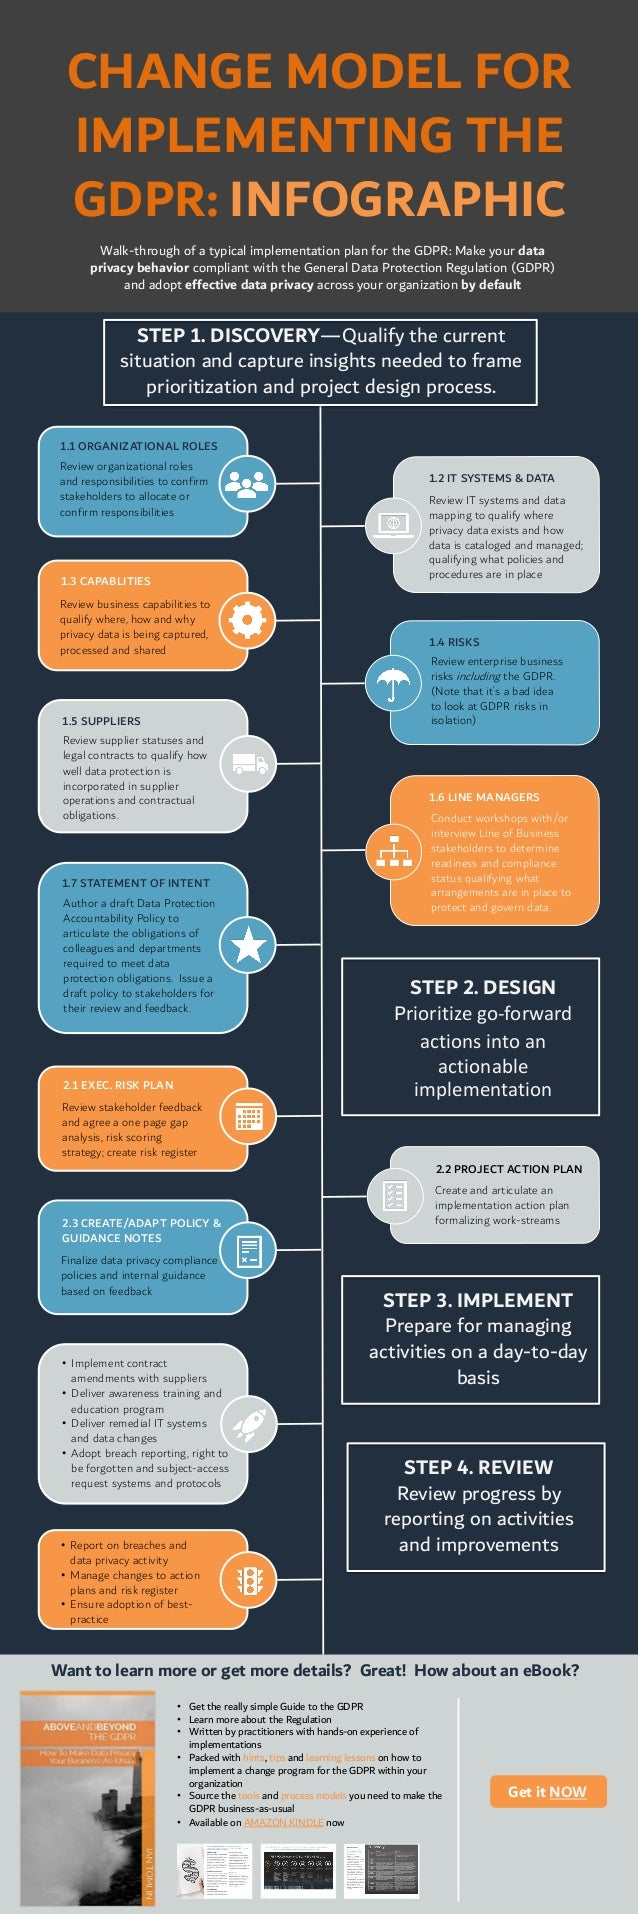 GDPR Guide 2019 Infographic (pdf)